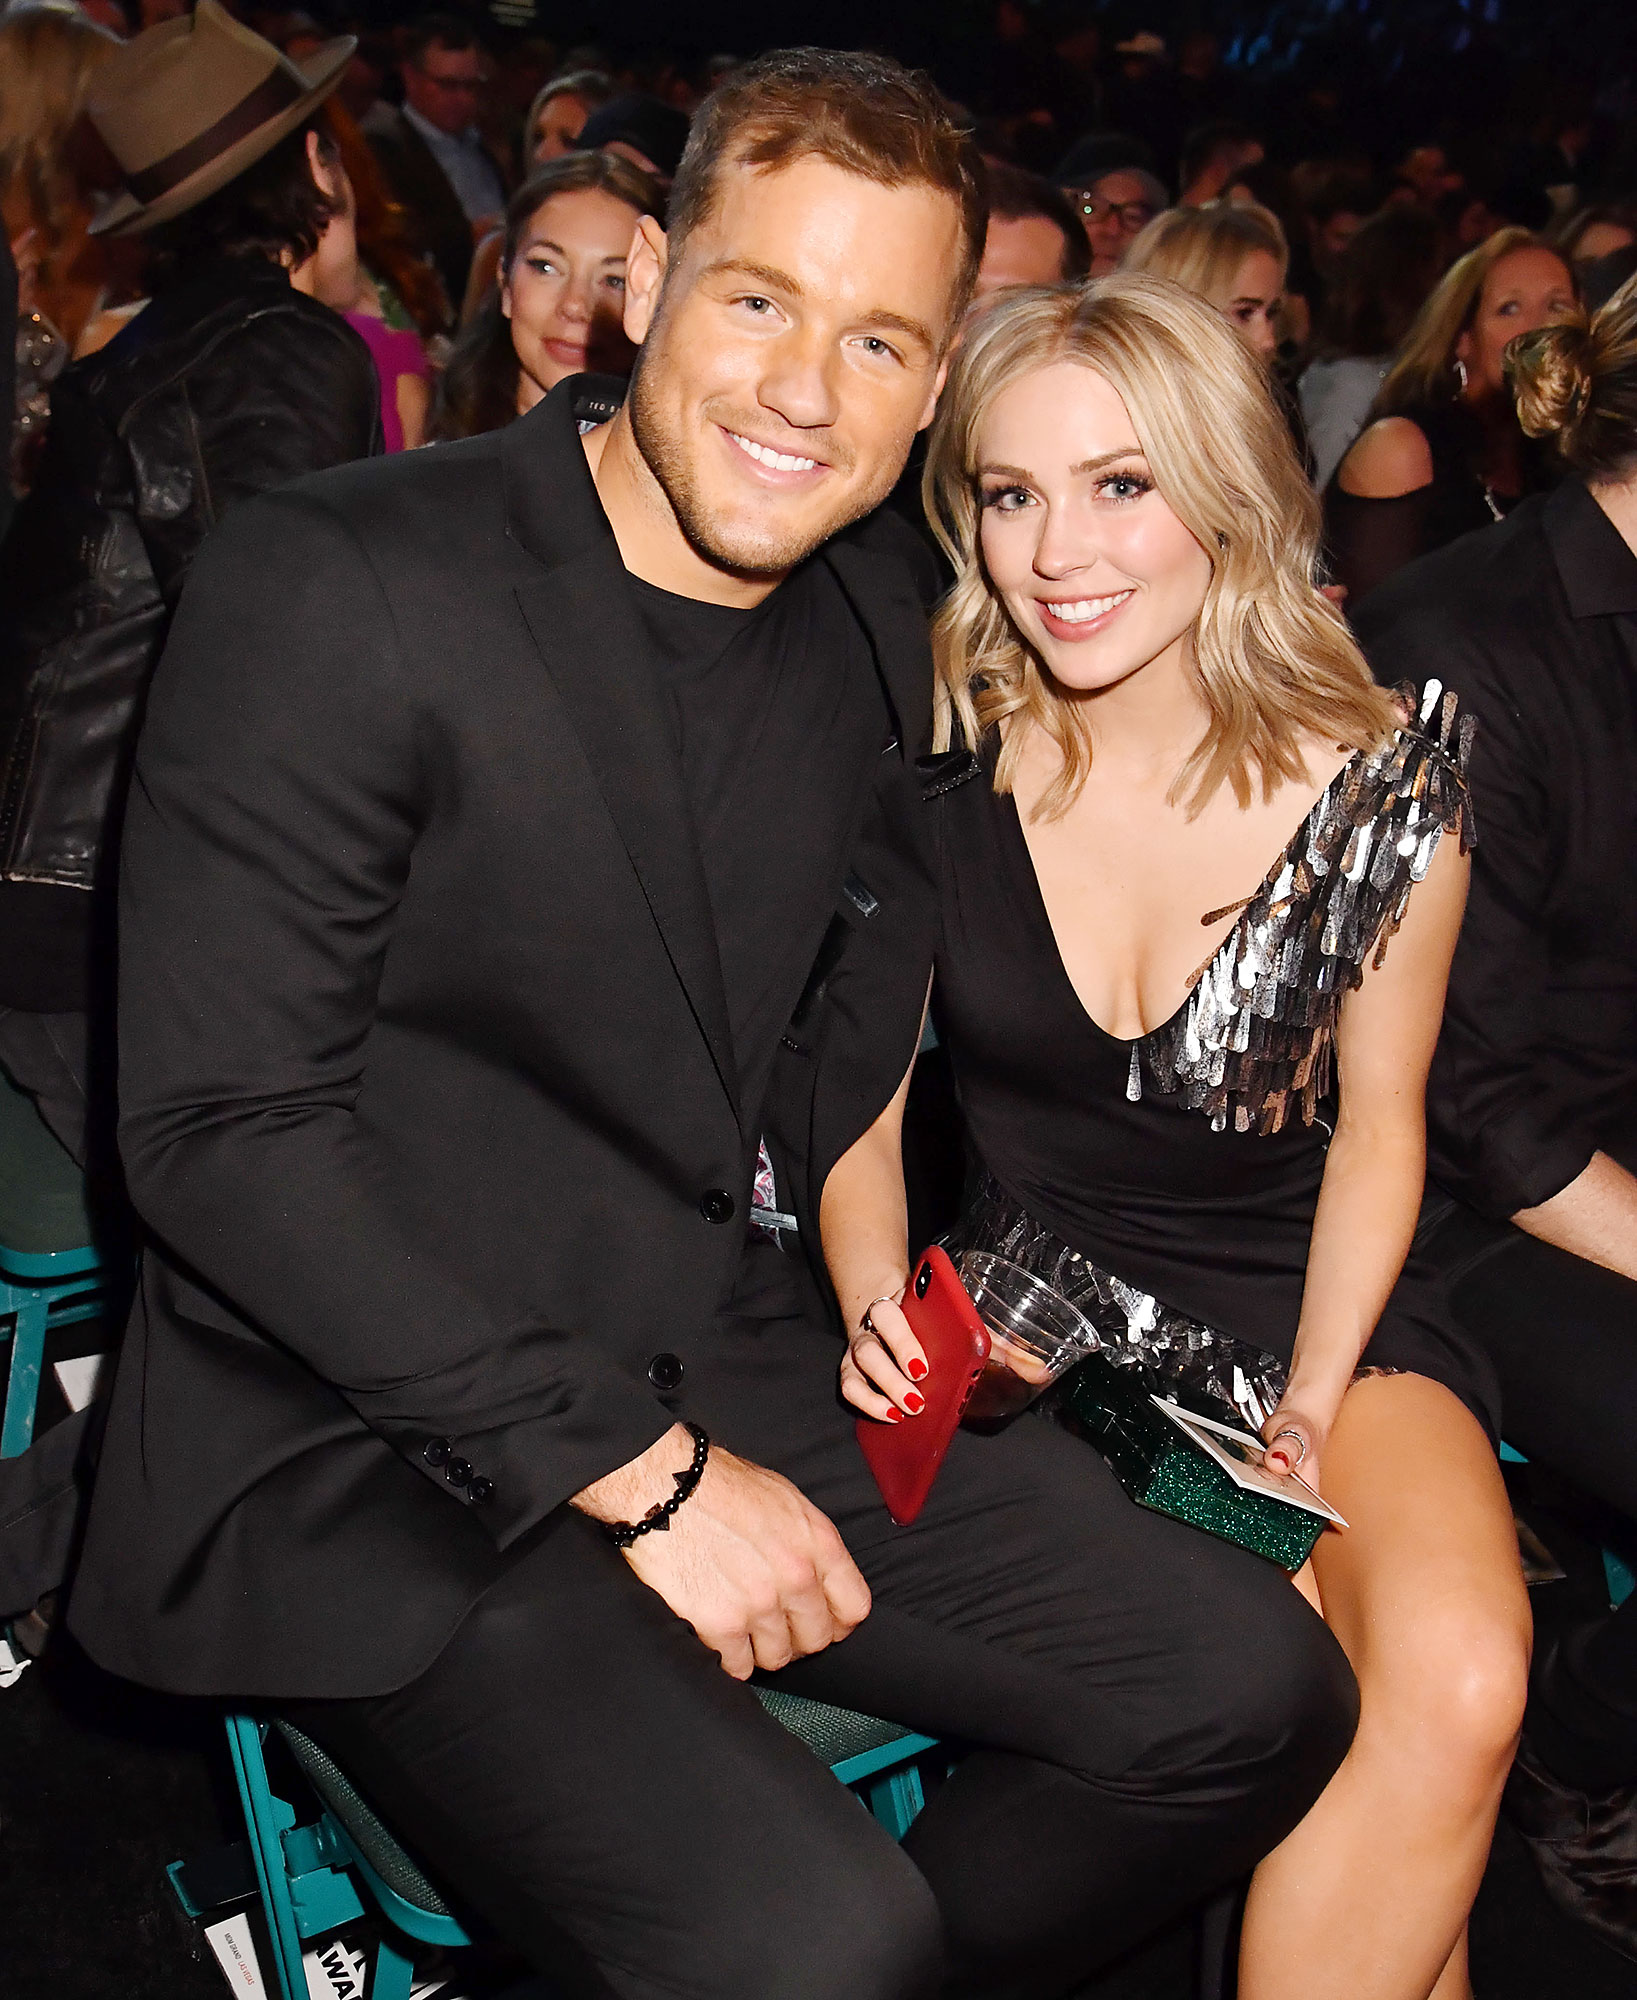 Inside ACM Awards 2019 Colton Underwood Cassie Randolph - The Legacy Foundation owner and the speech pathologist were inseparable during their night out.